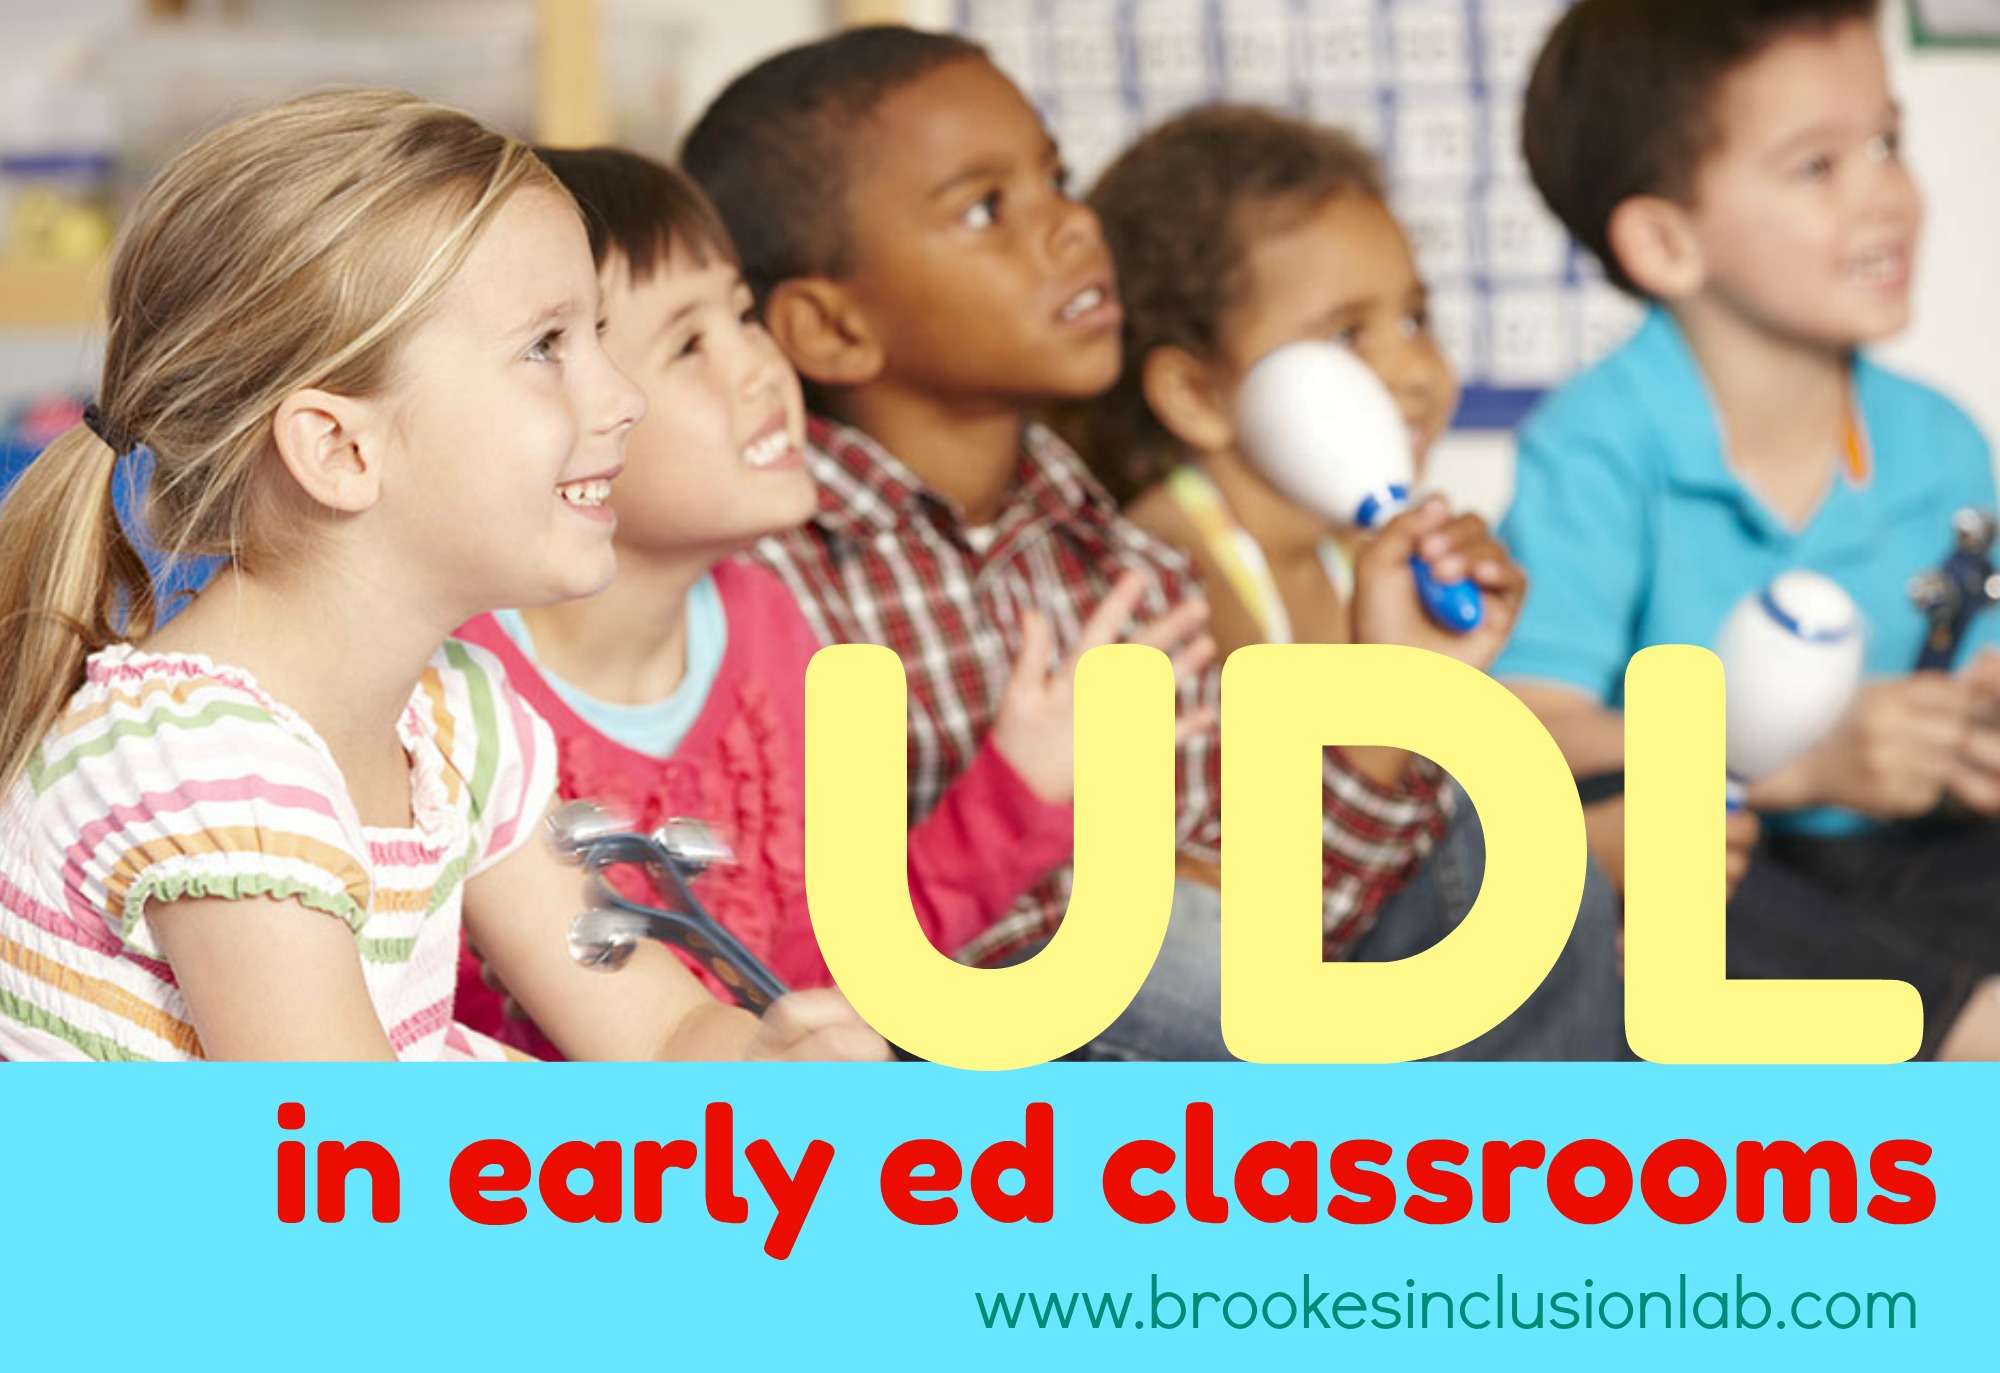 photo of young children sitting down and looking upward with the words UDL in early ed classrooms over the photo